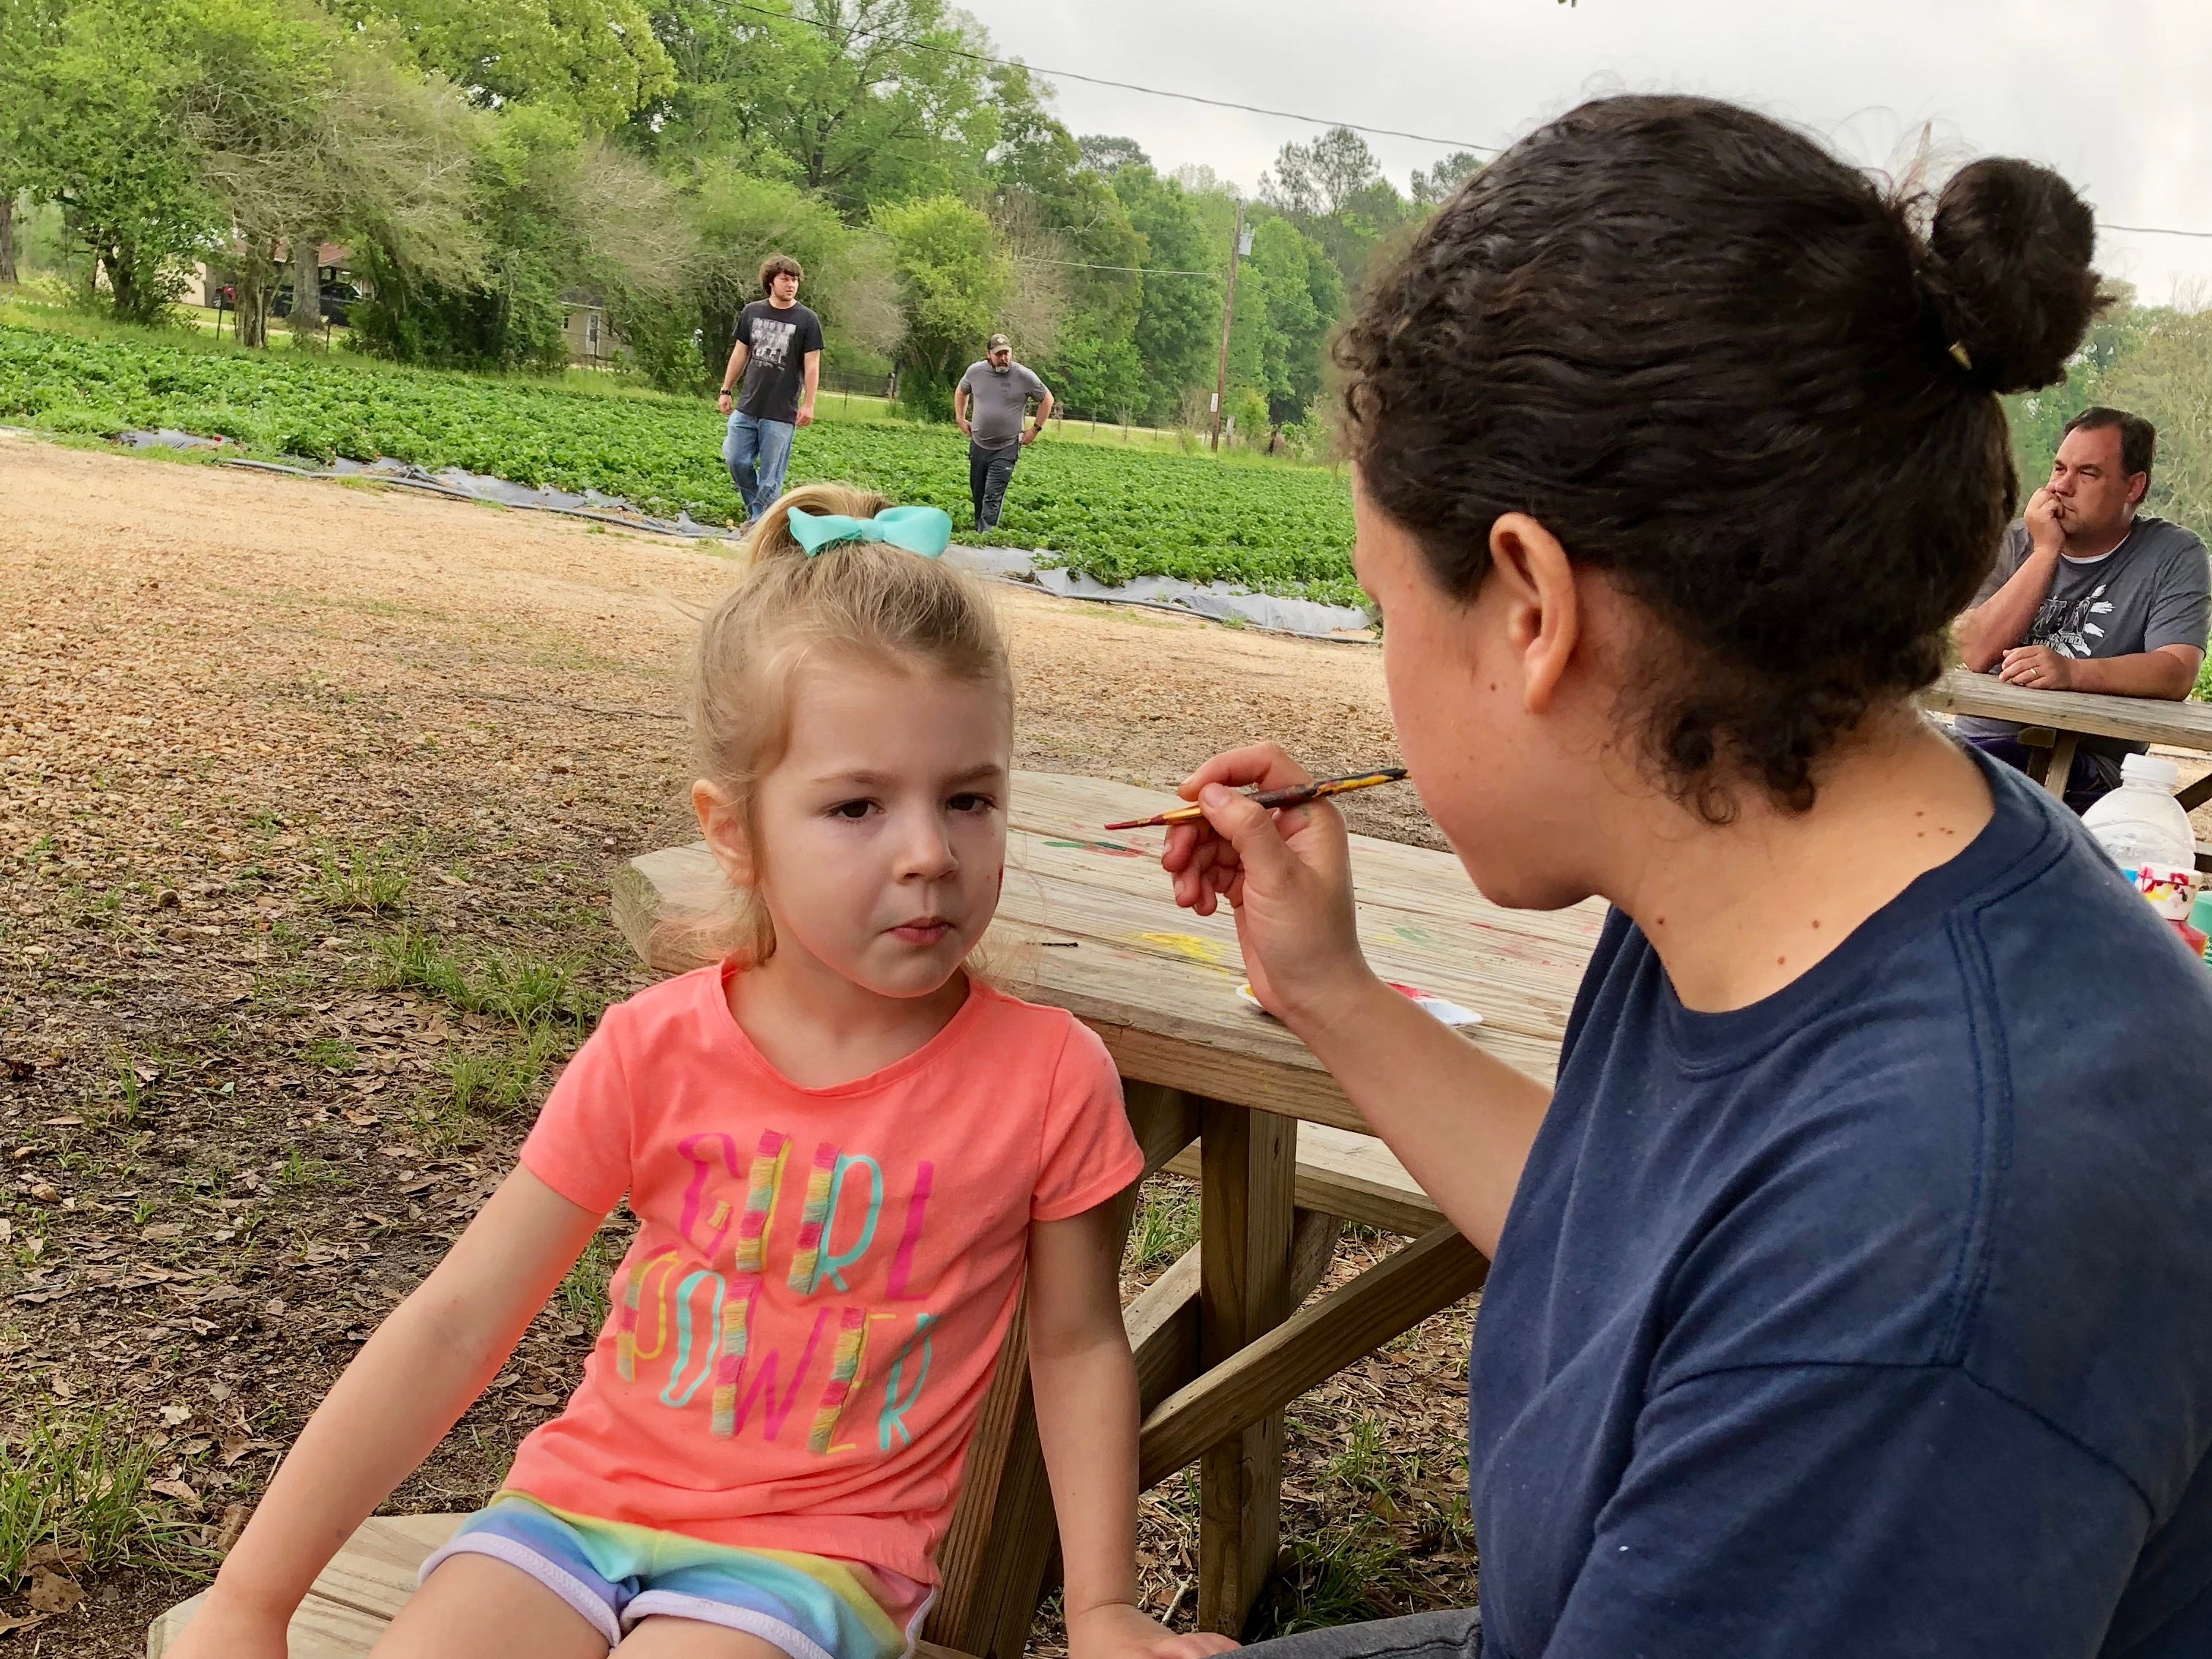 Avery Guidry gets a strawberry painted on her face April 6 at Mrs. Heather's Strawberry Farm in Albany, Louisiana.